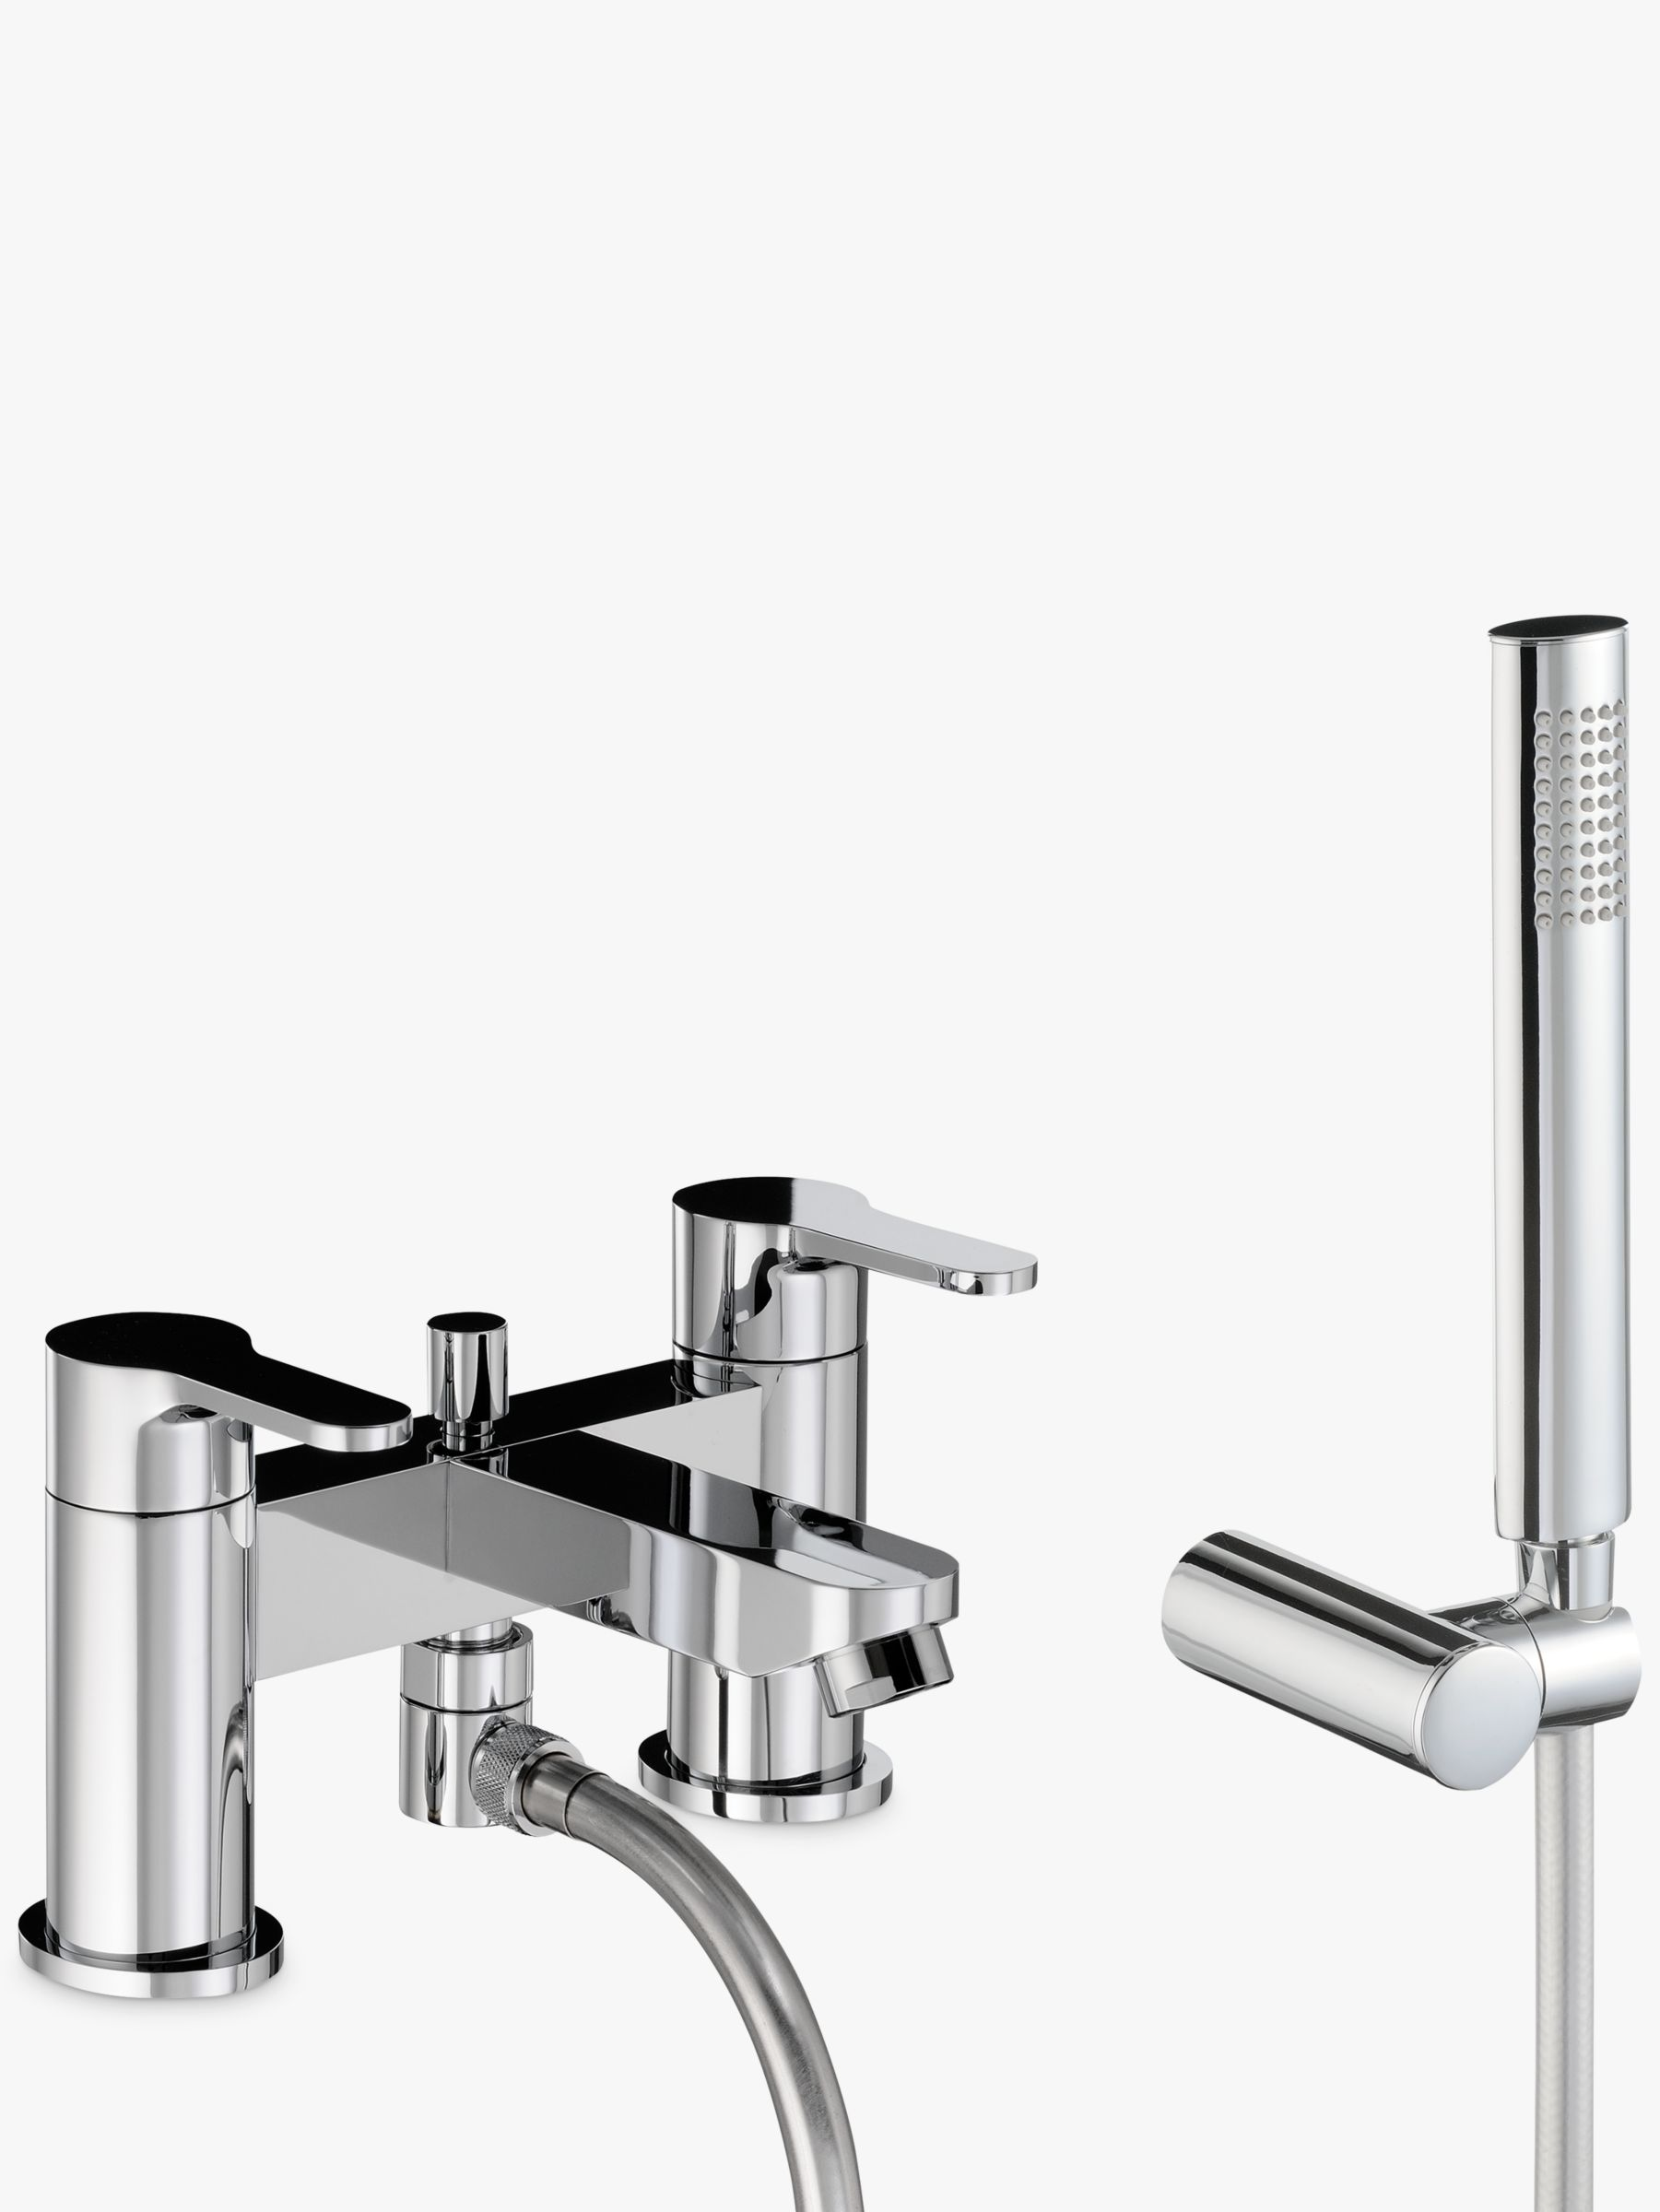 Abode Abode Debut Deck Mounted Bath/Shower Mixer with Shower Handset